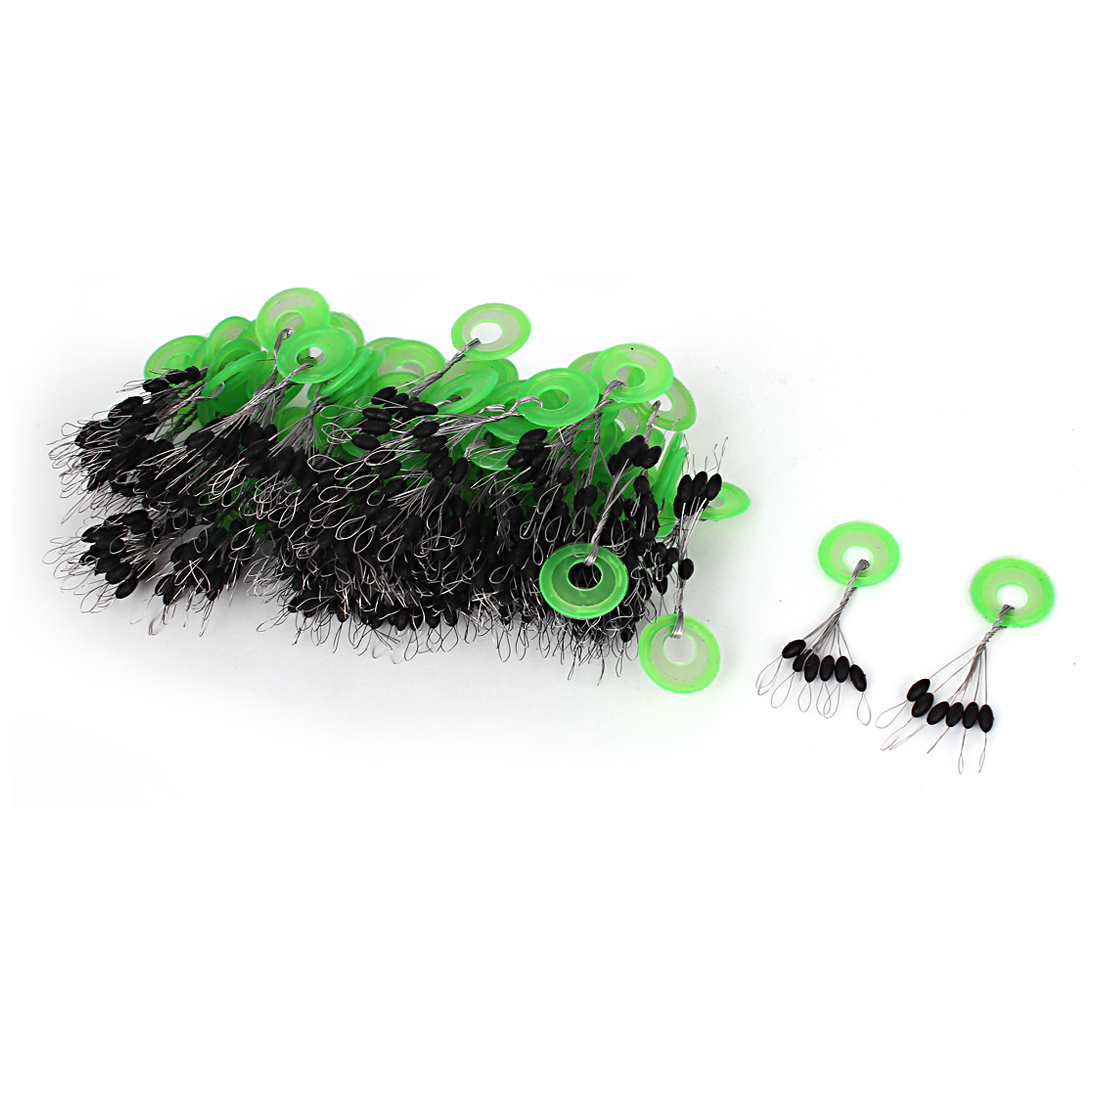 Unique Bargains 6 in 1 Rubber Fishing Floaters Bobbers 5mm Long 100 Pcs by